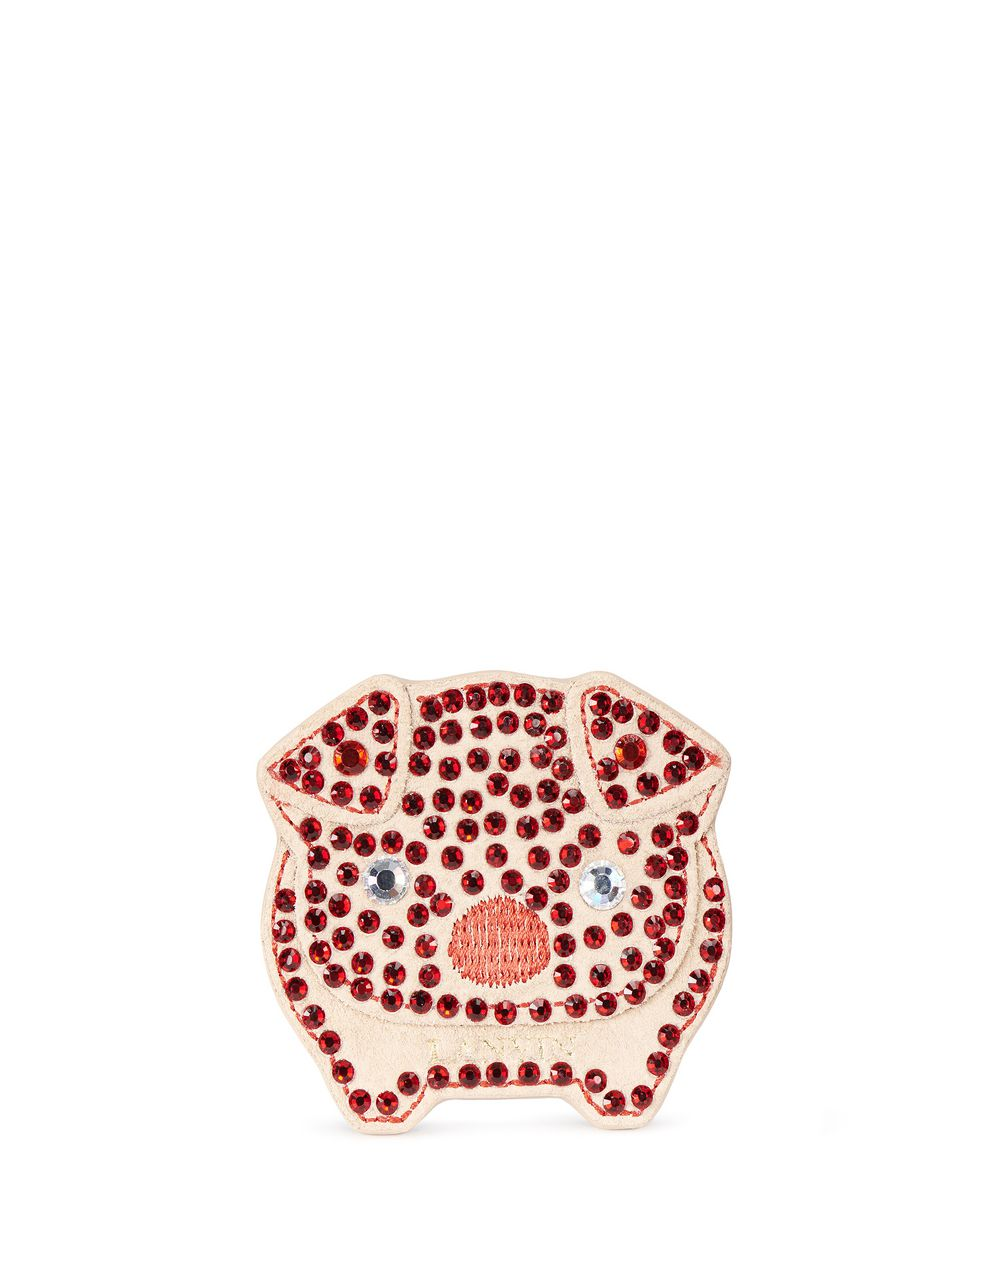 POPPY EMBROIDERED SHOE PATCH - Lanvin